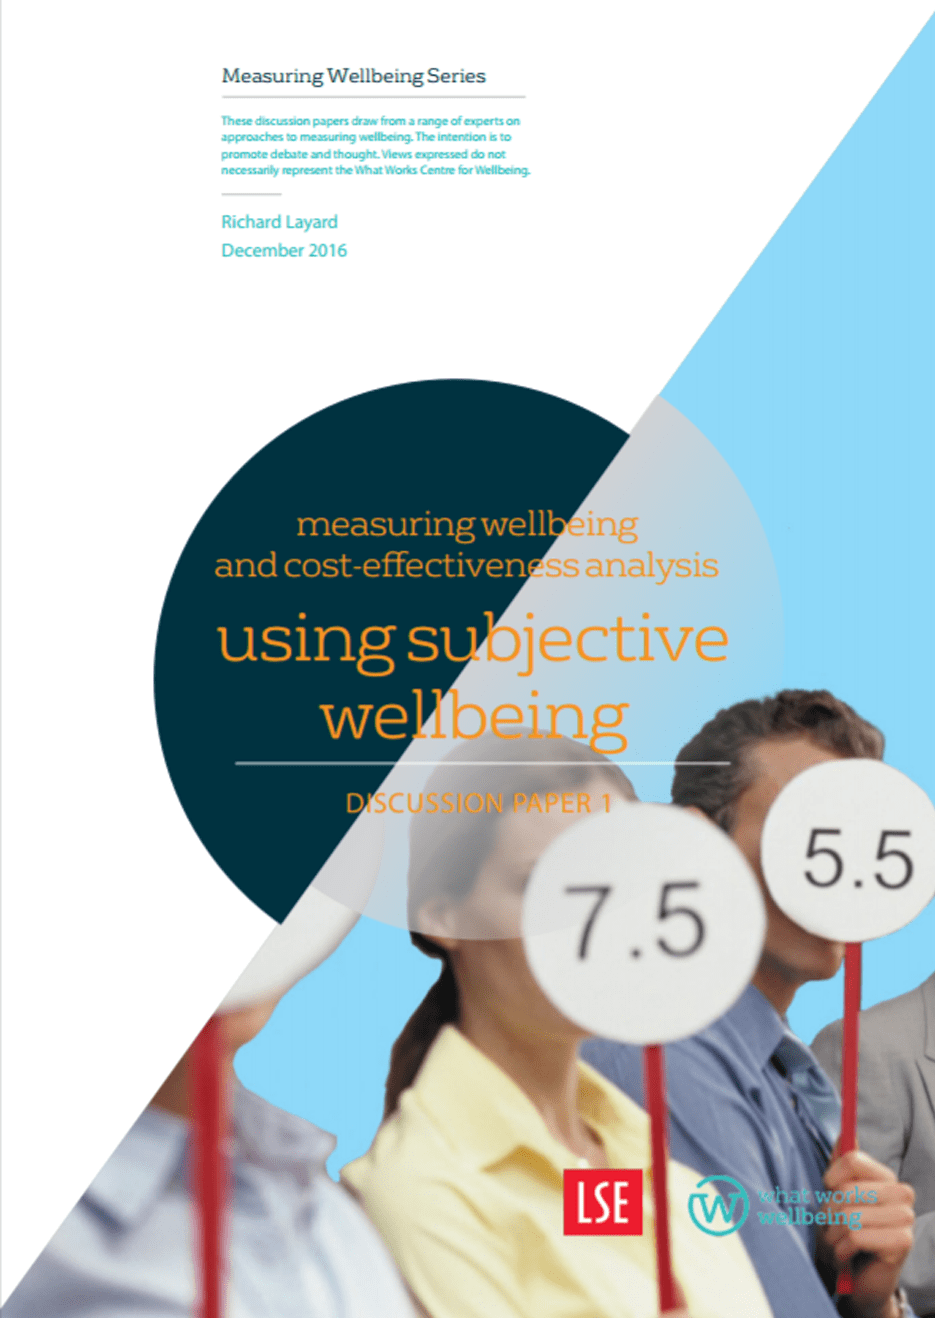 Measuring Wellbeing and cost-effectiveness analysis: discussion paper 1